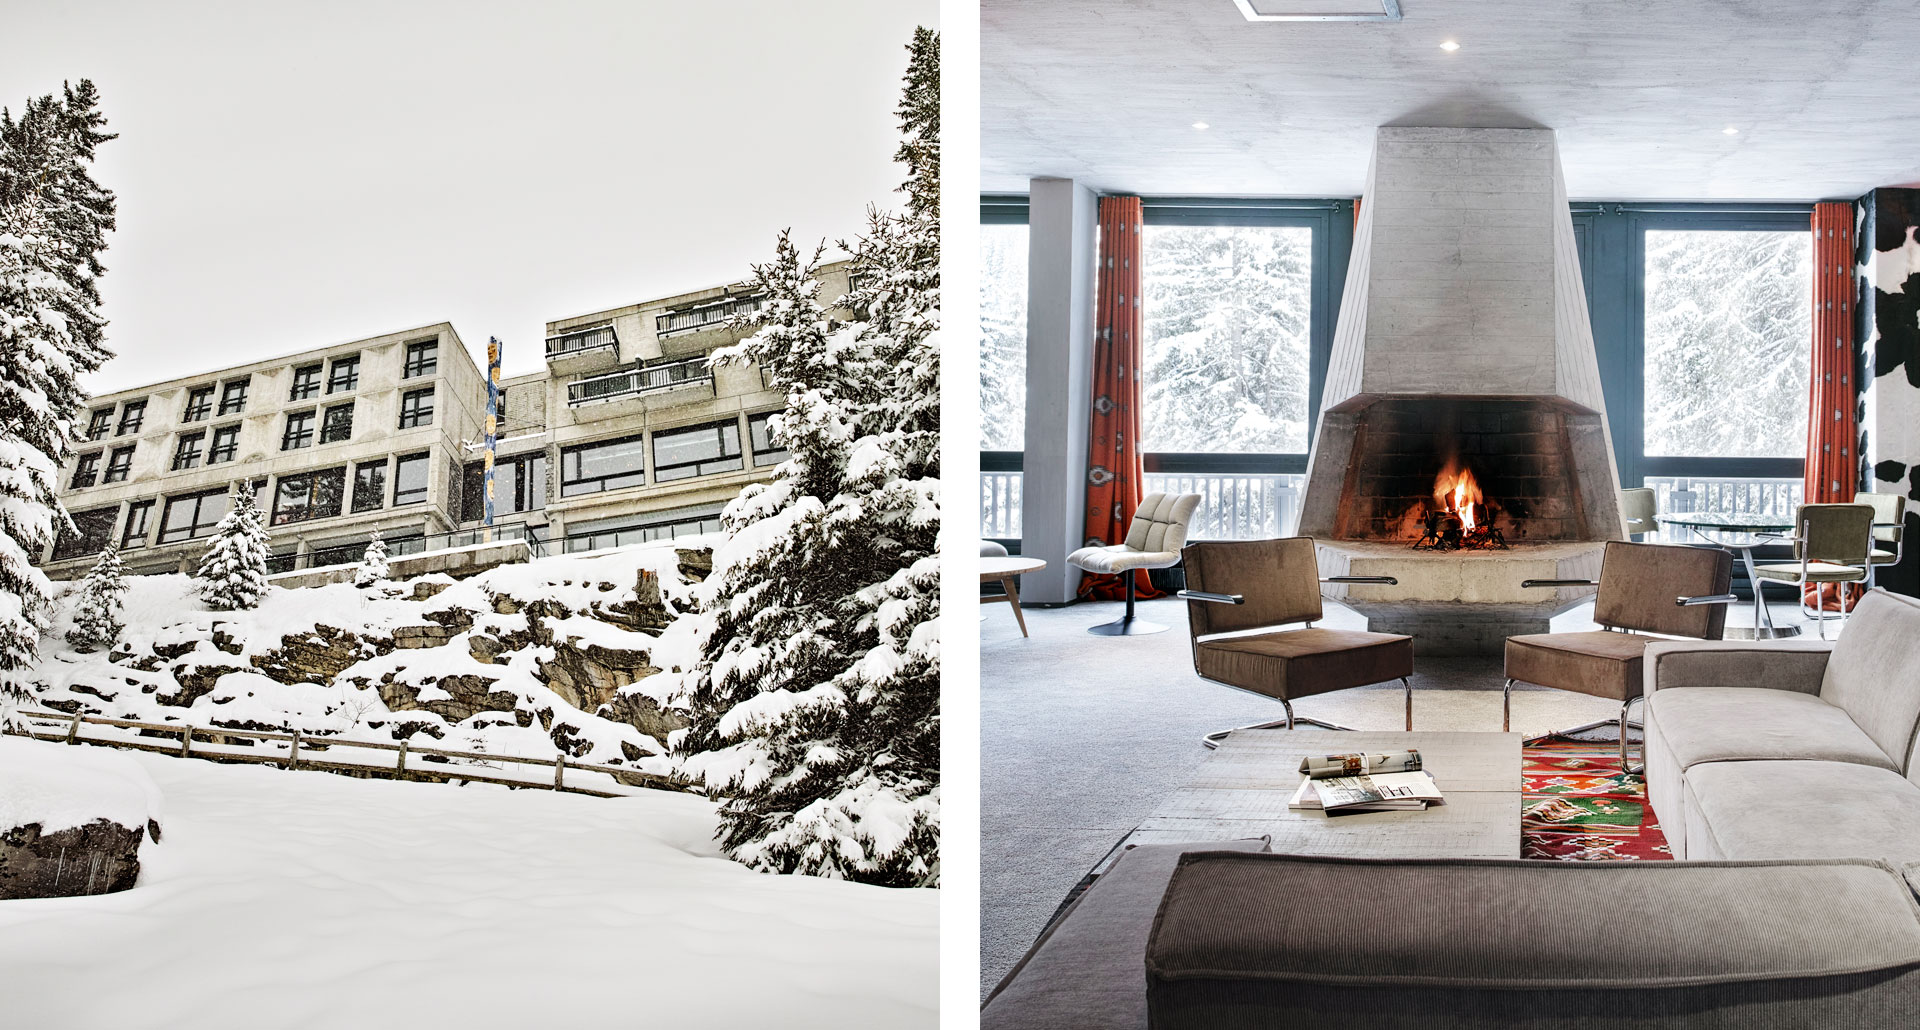 TERMINAL NEIGE TOTEM - boutique hotel in Flaine, France